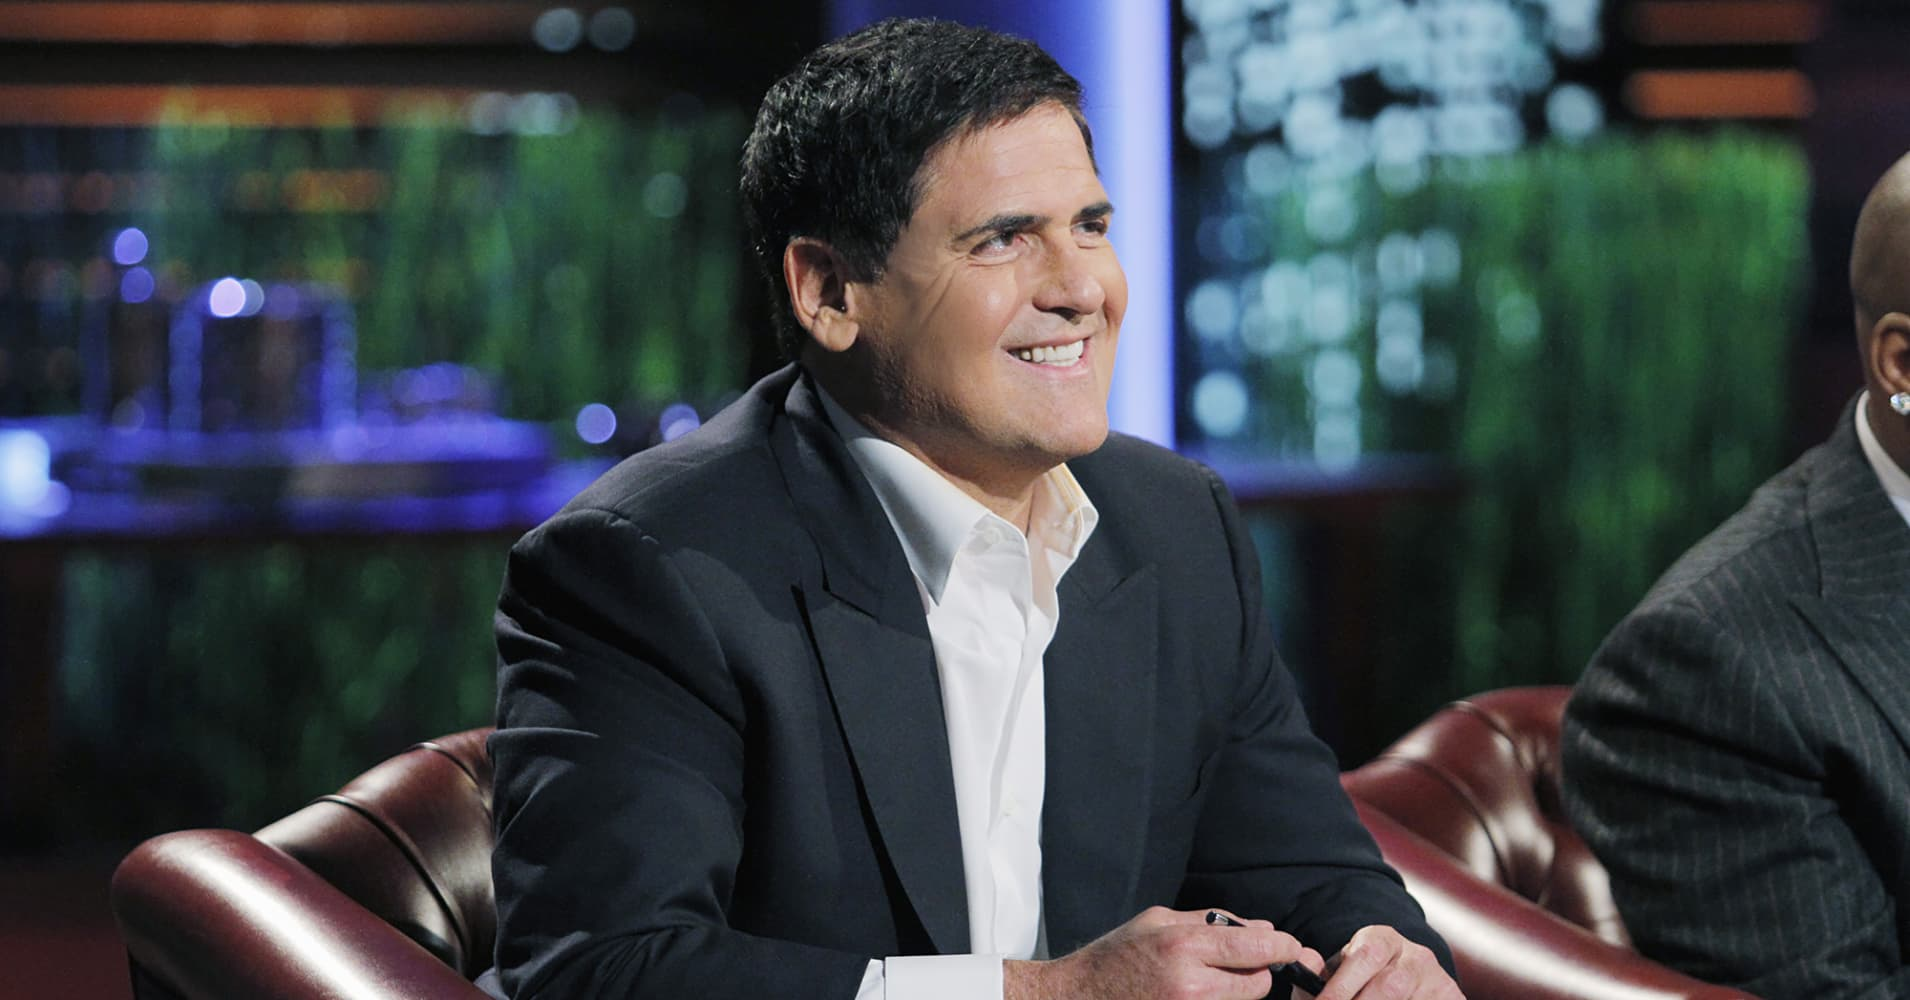 The crucial business lesson Mark Cuban taught this CEO about success